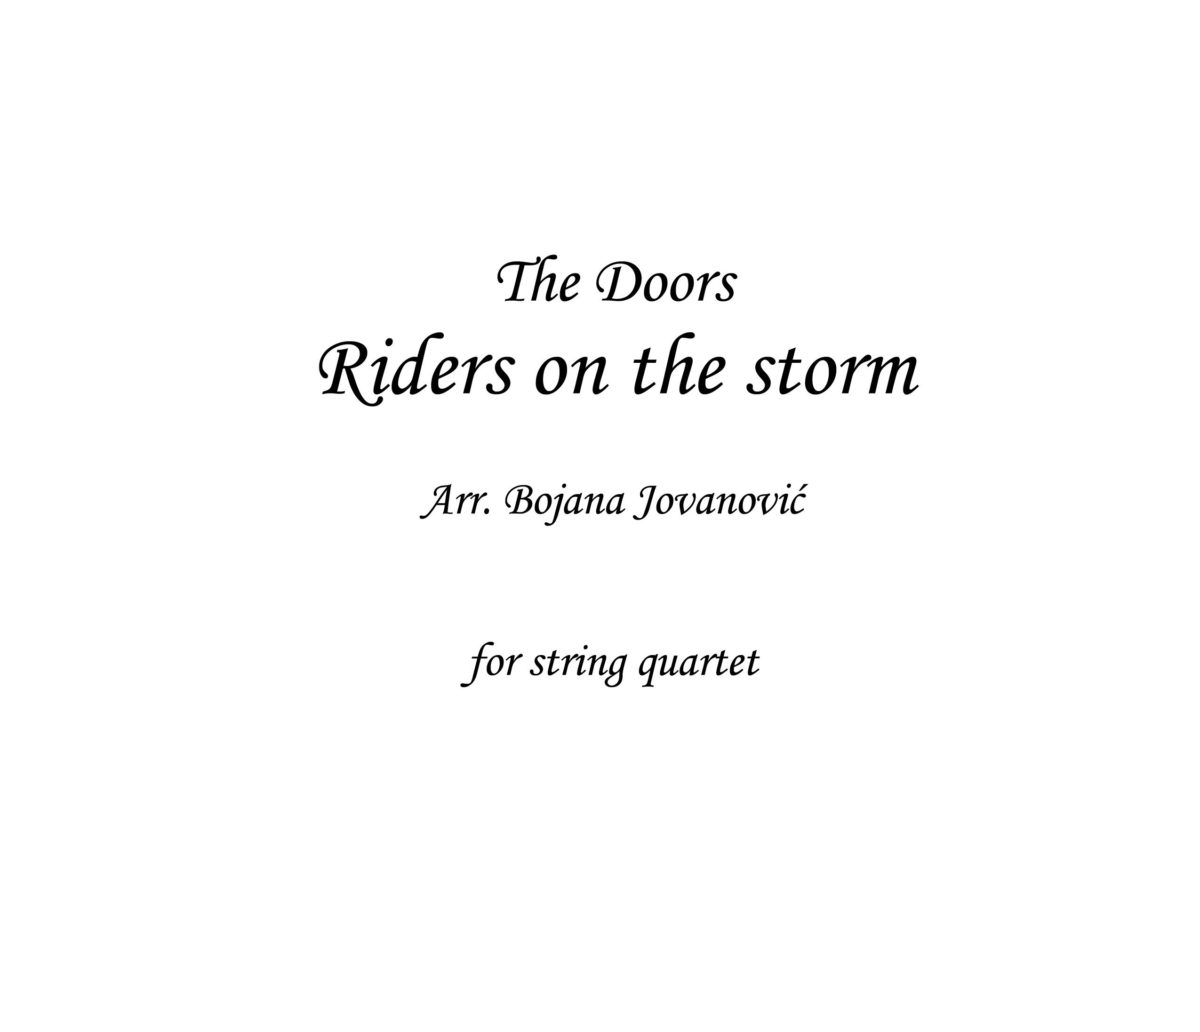 Riders on the storm (The Doors) - Sheet Music